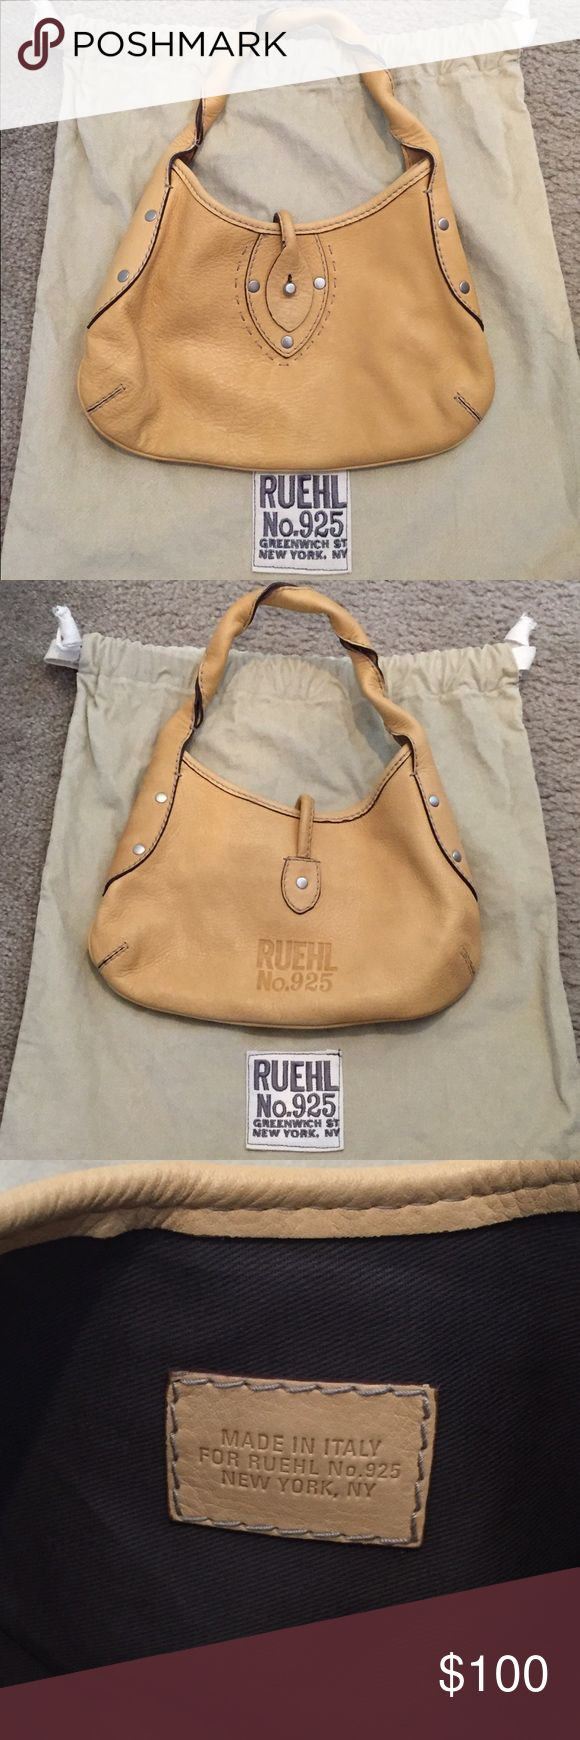 Small All Leather Over Shoulder Purse This is a almost brand new all leather purse from Ruehl No. 925 which used to be an offshoot of Abercrombie. The brand was meant to be a more mature adult style and the craftsmanship is wonderful. The purse has been used once or twice and is made of Italian leather. It comes with the original dust bag. Make me an offer! Abercrombie & Fitch Bags